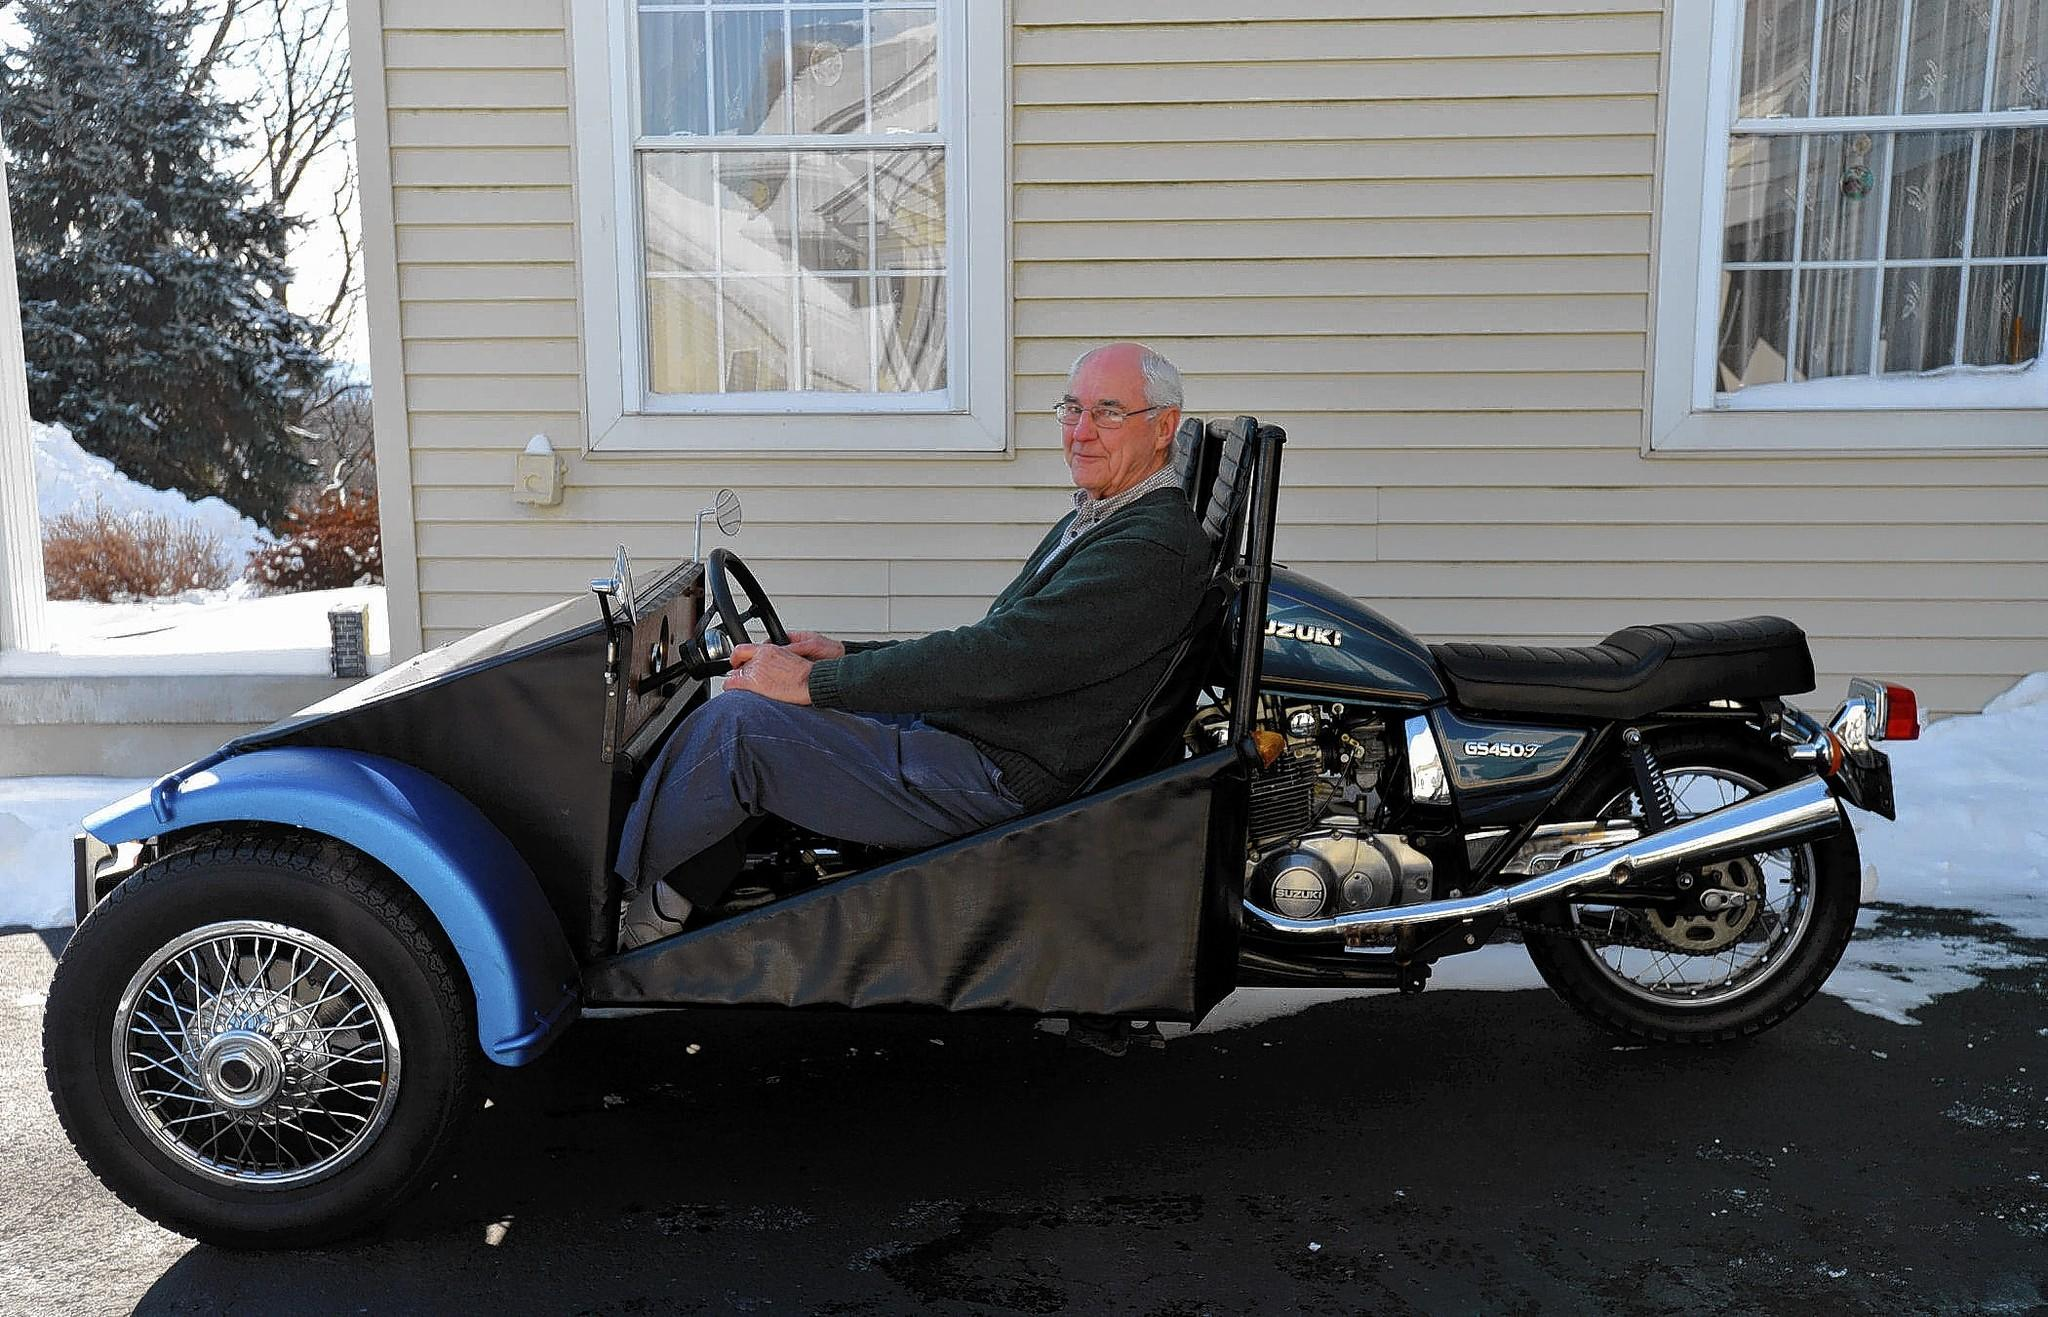 Harry Wohlbach of Macungie made a car for $700 with an old motorcycle and Volkswagen Dune Buggy.